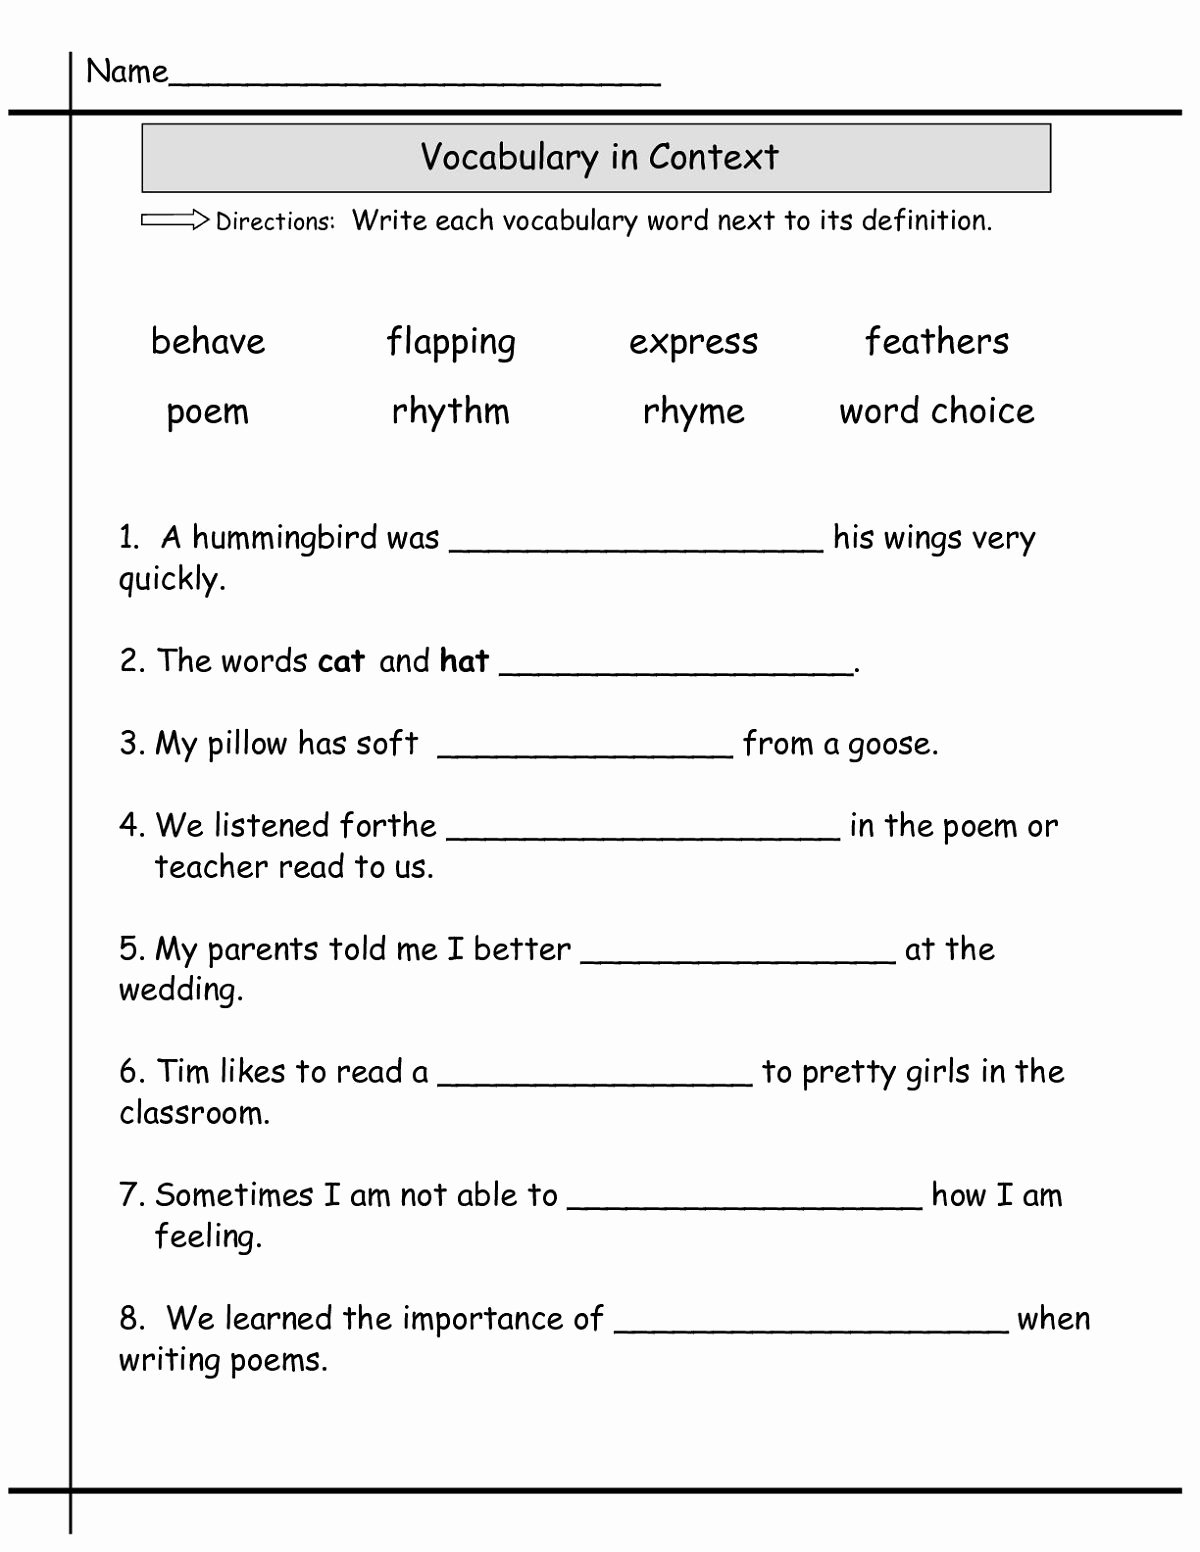 English Worksheet for Grade 2 Elegant 2nd Grade English Worksheets Best Coloring Pages for Kids